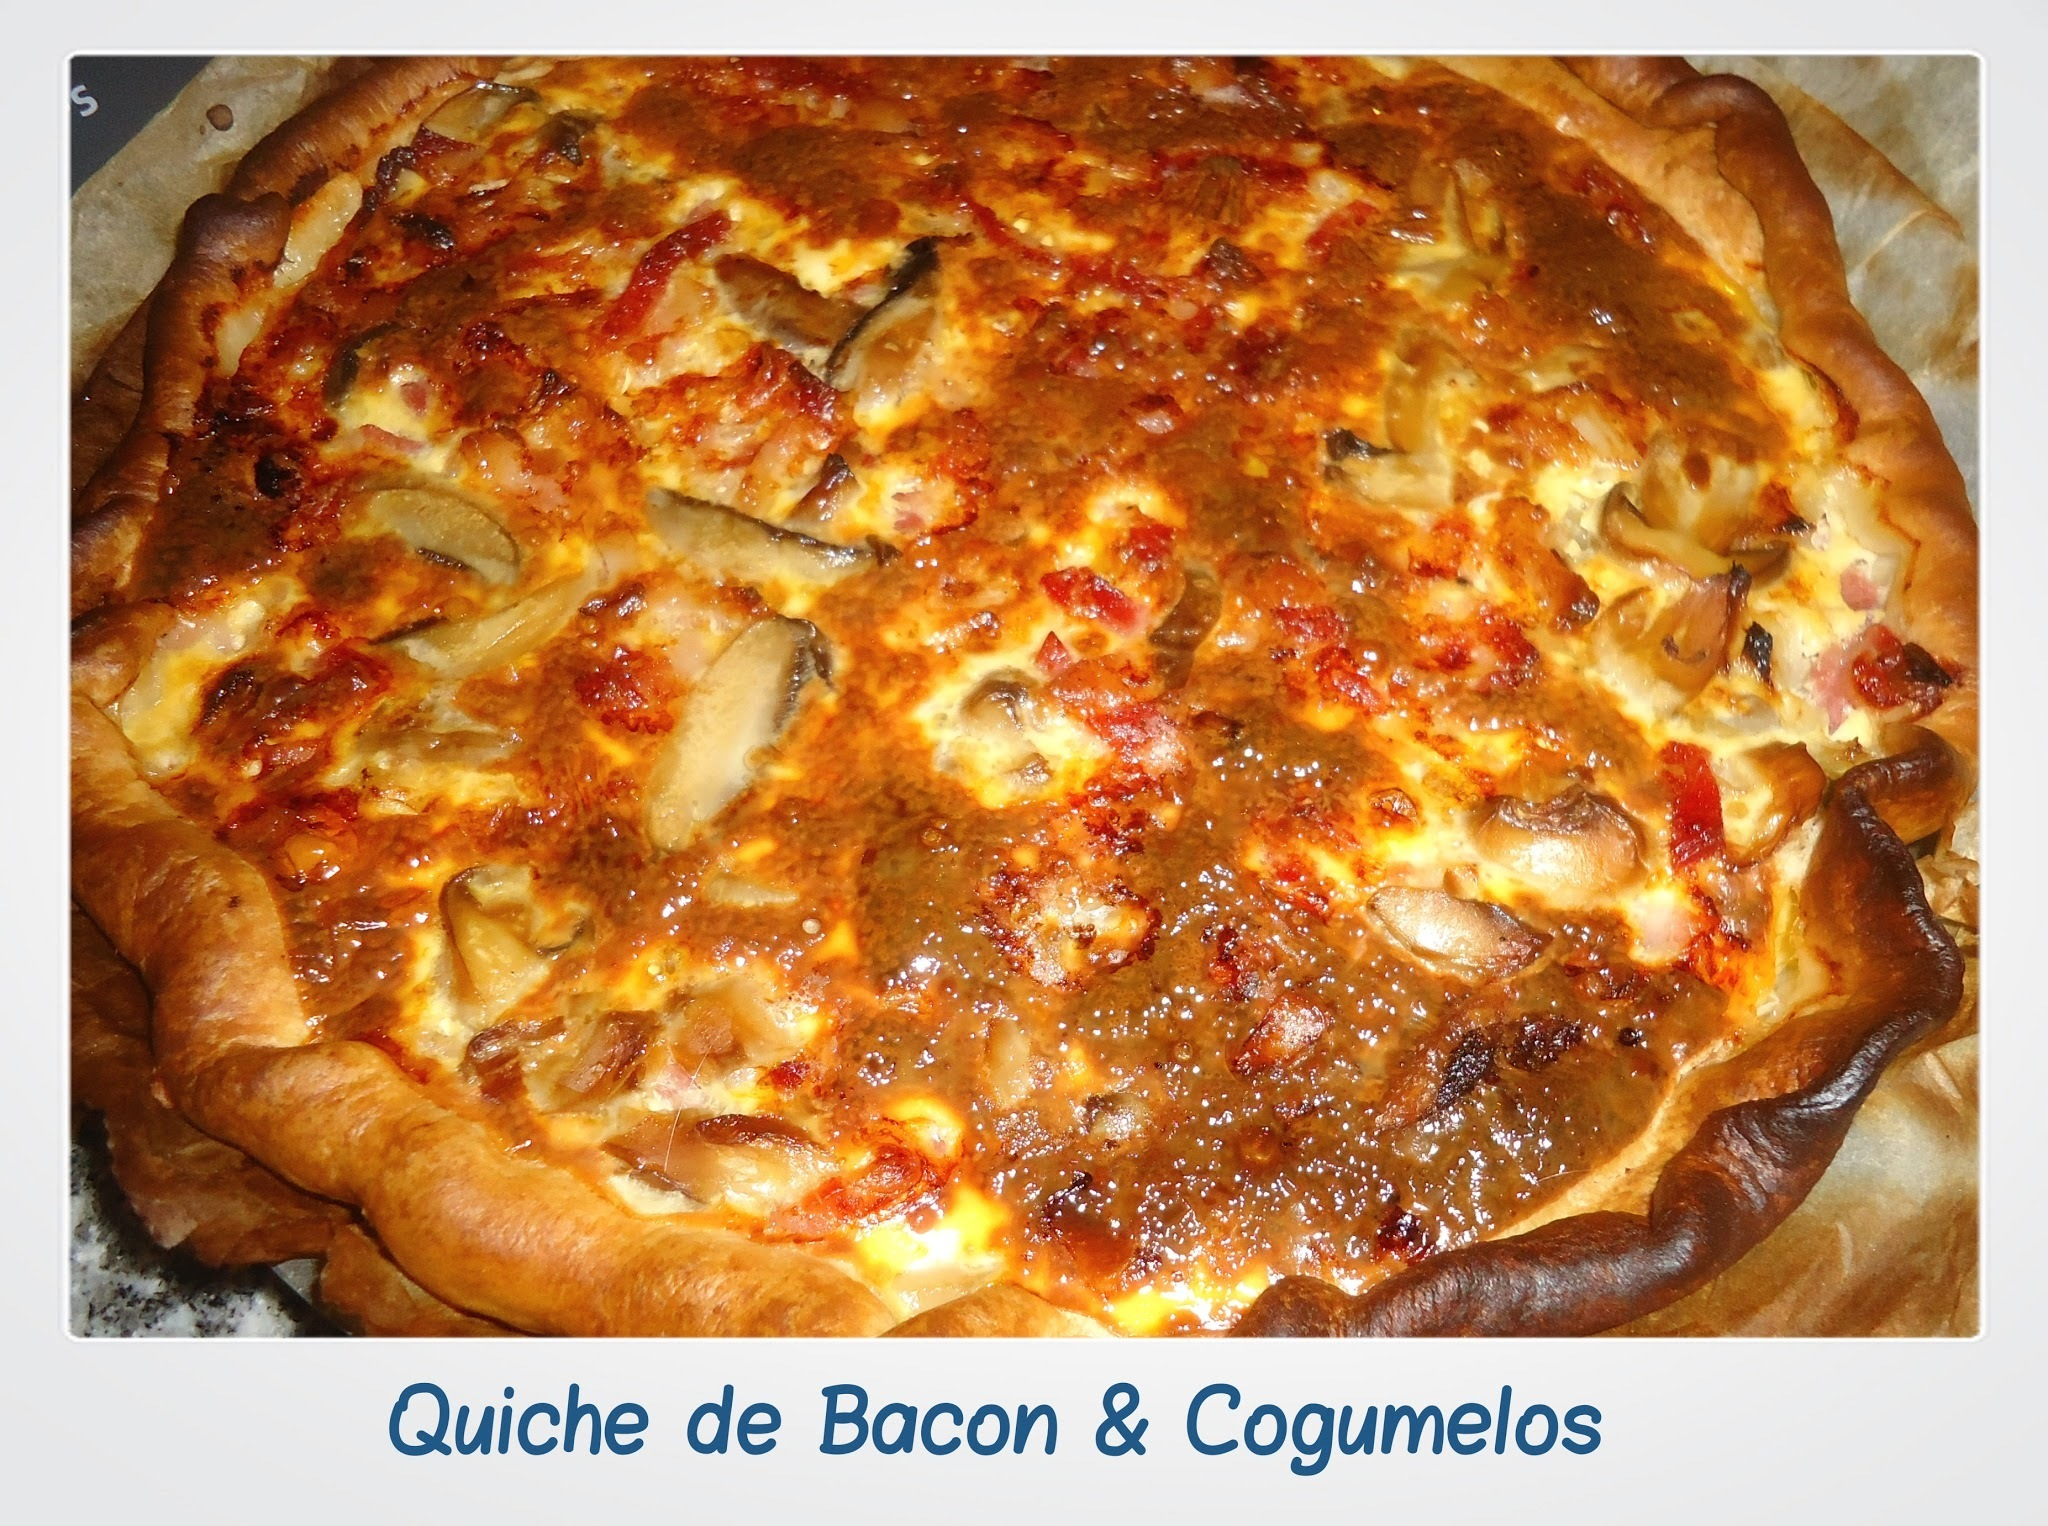 Quiche de Bacon & Cogumelos